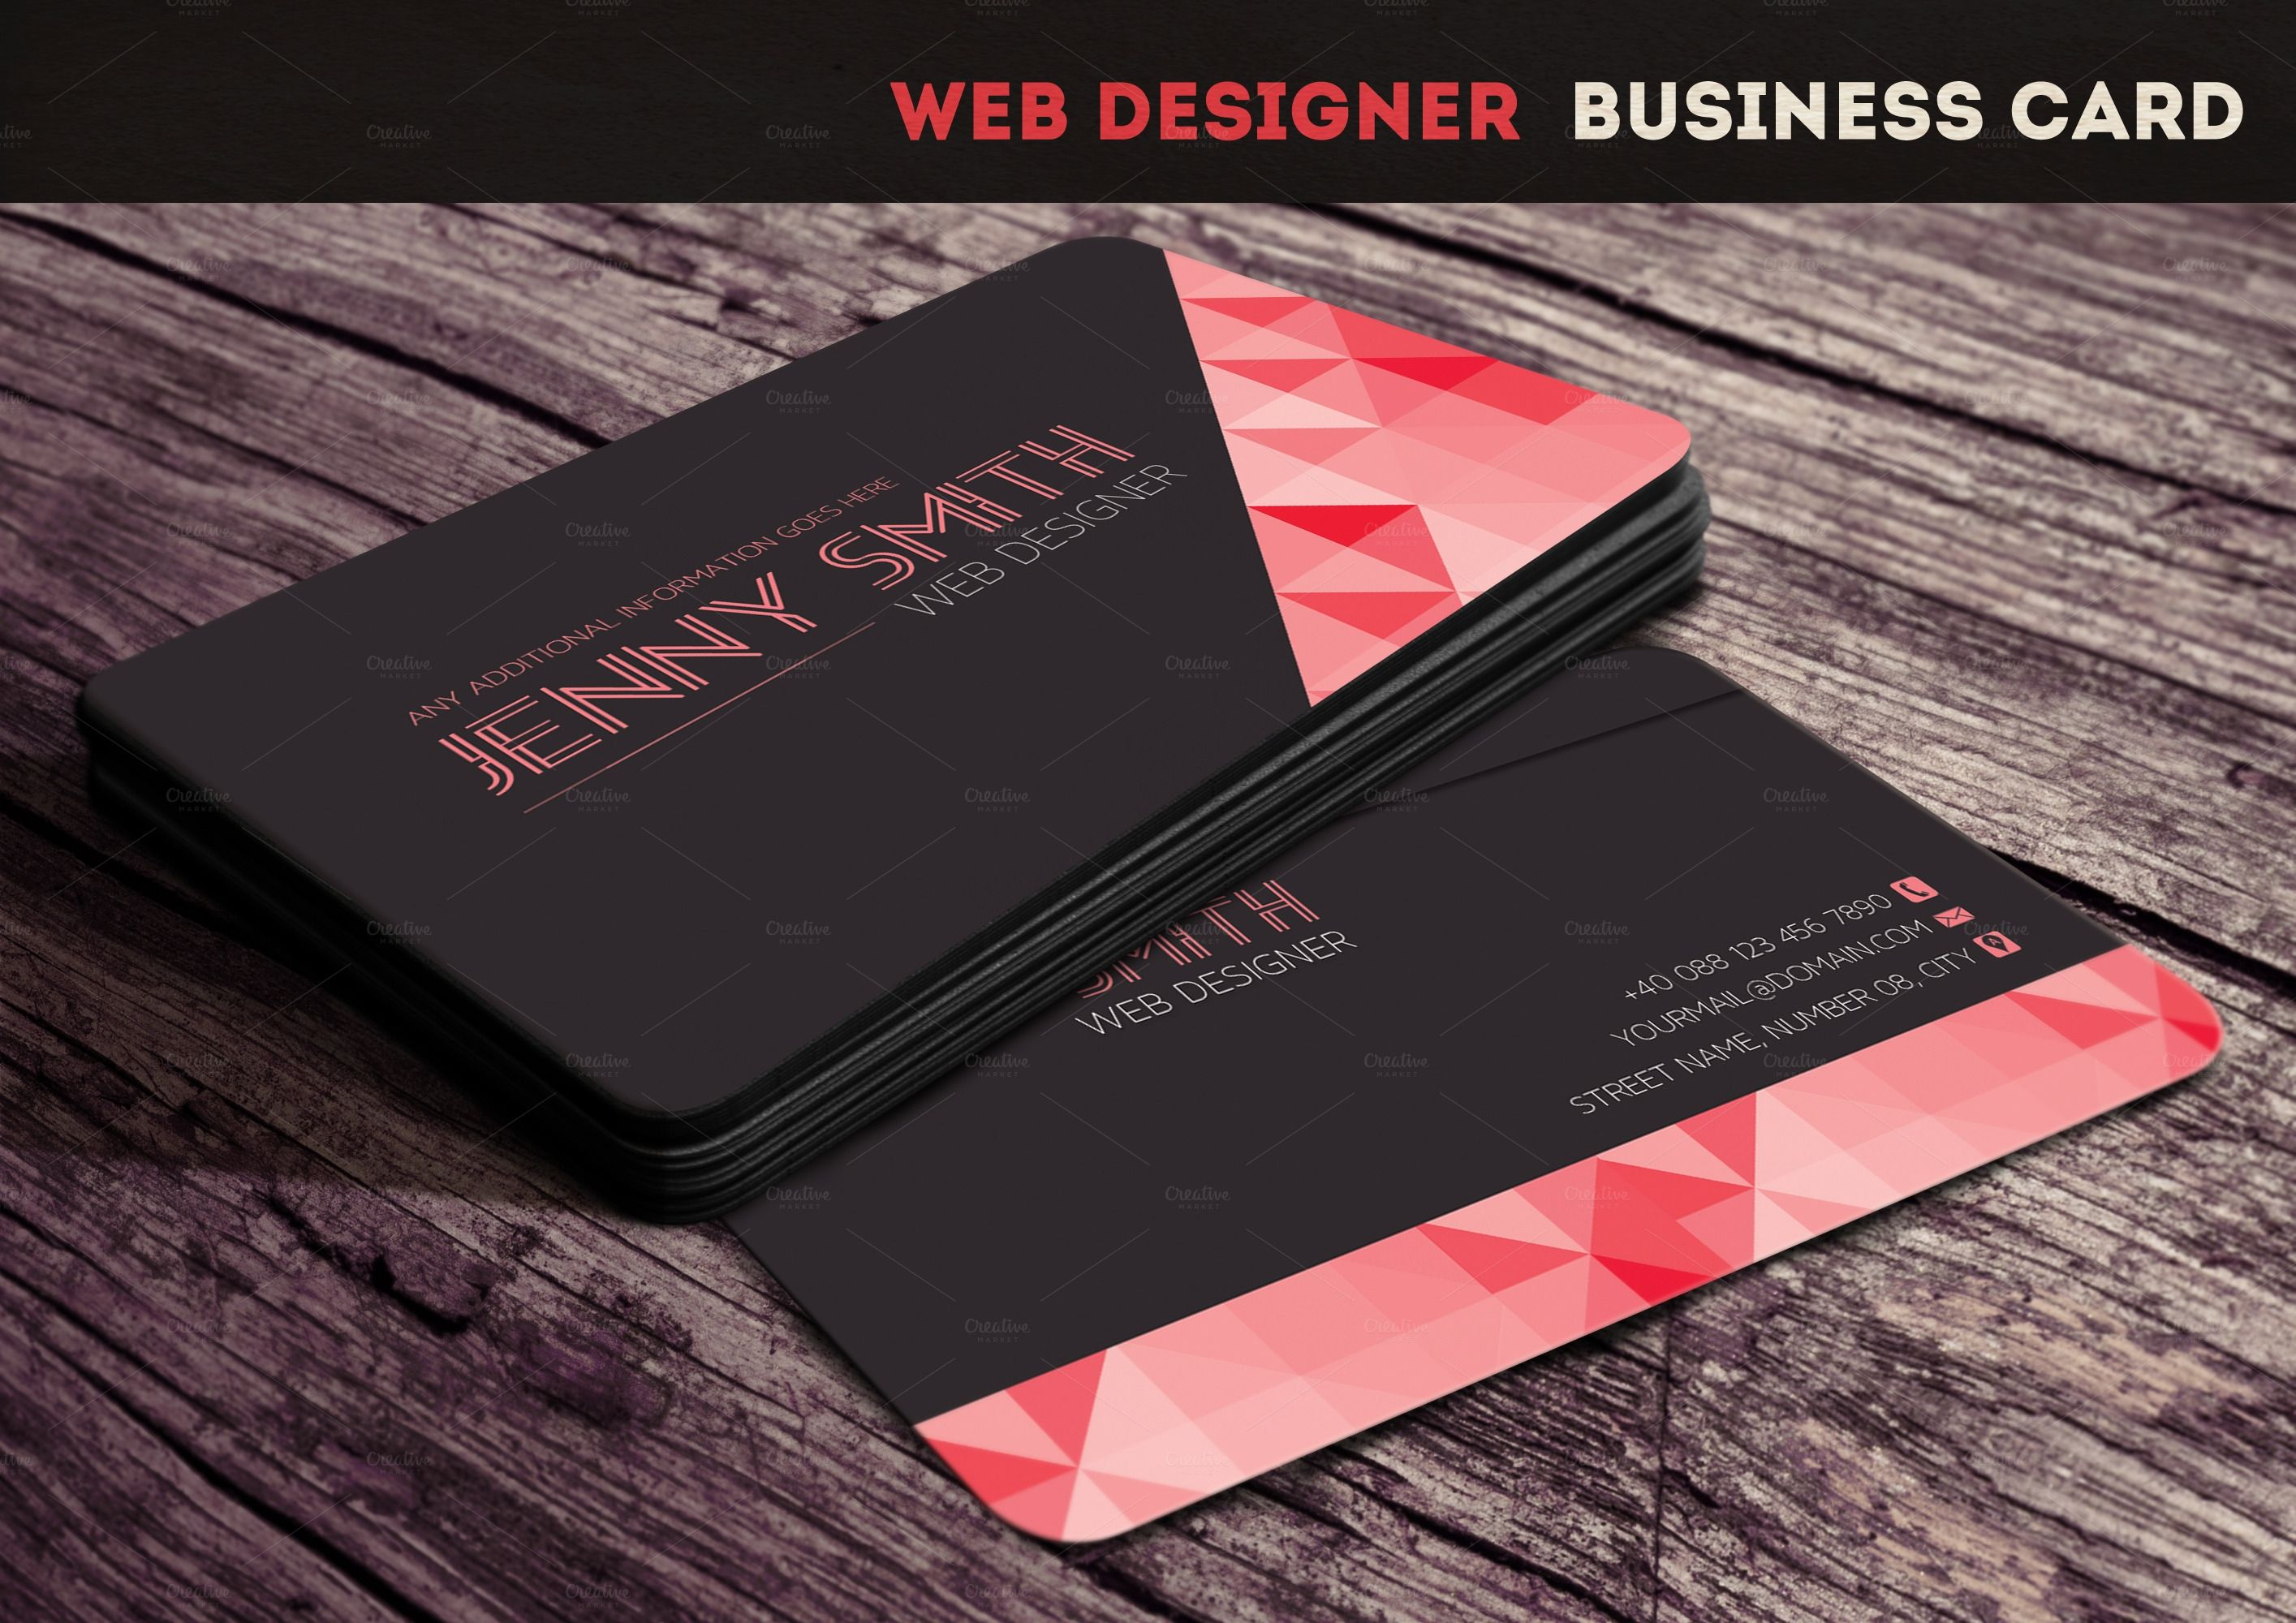 Interior Architect Business Cards Google Search Business Card Design Typography Business Cards Business Cards Creative Templates